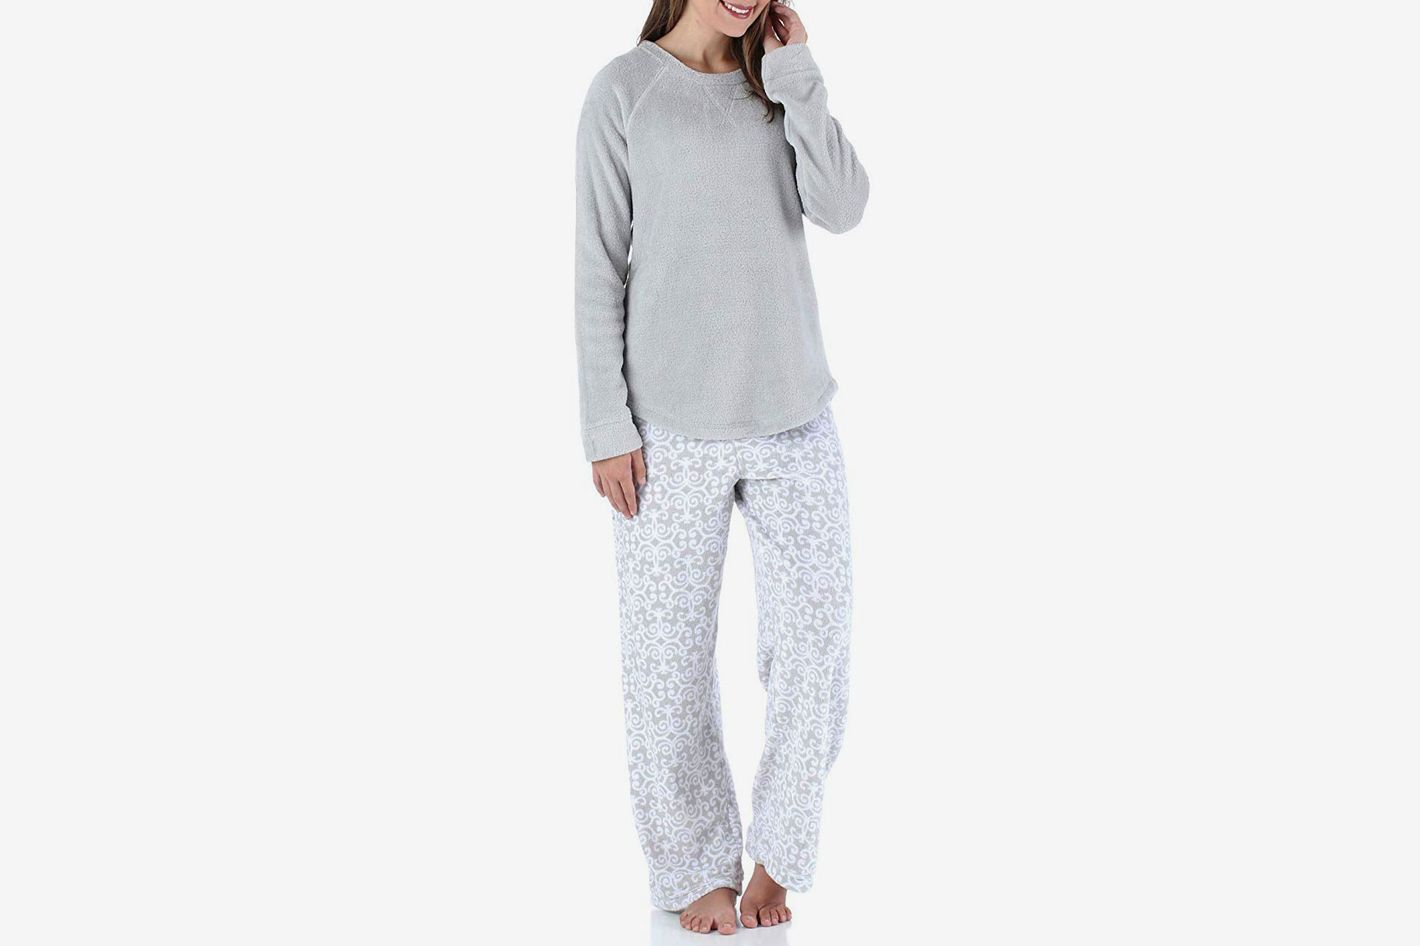 ea63ad3ed1 PajamaMania Women s Sleepwear Fleece Long Sleeve Pajamas PJ Set